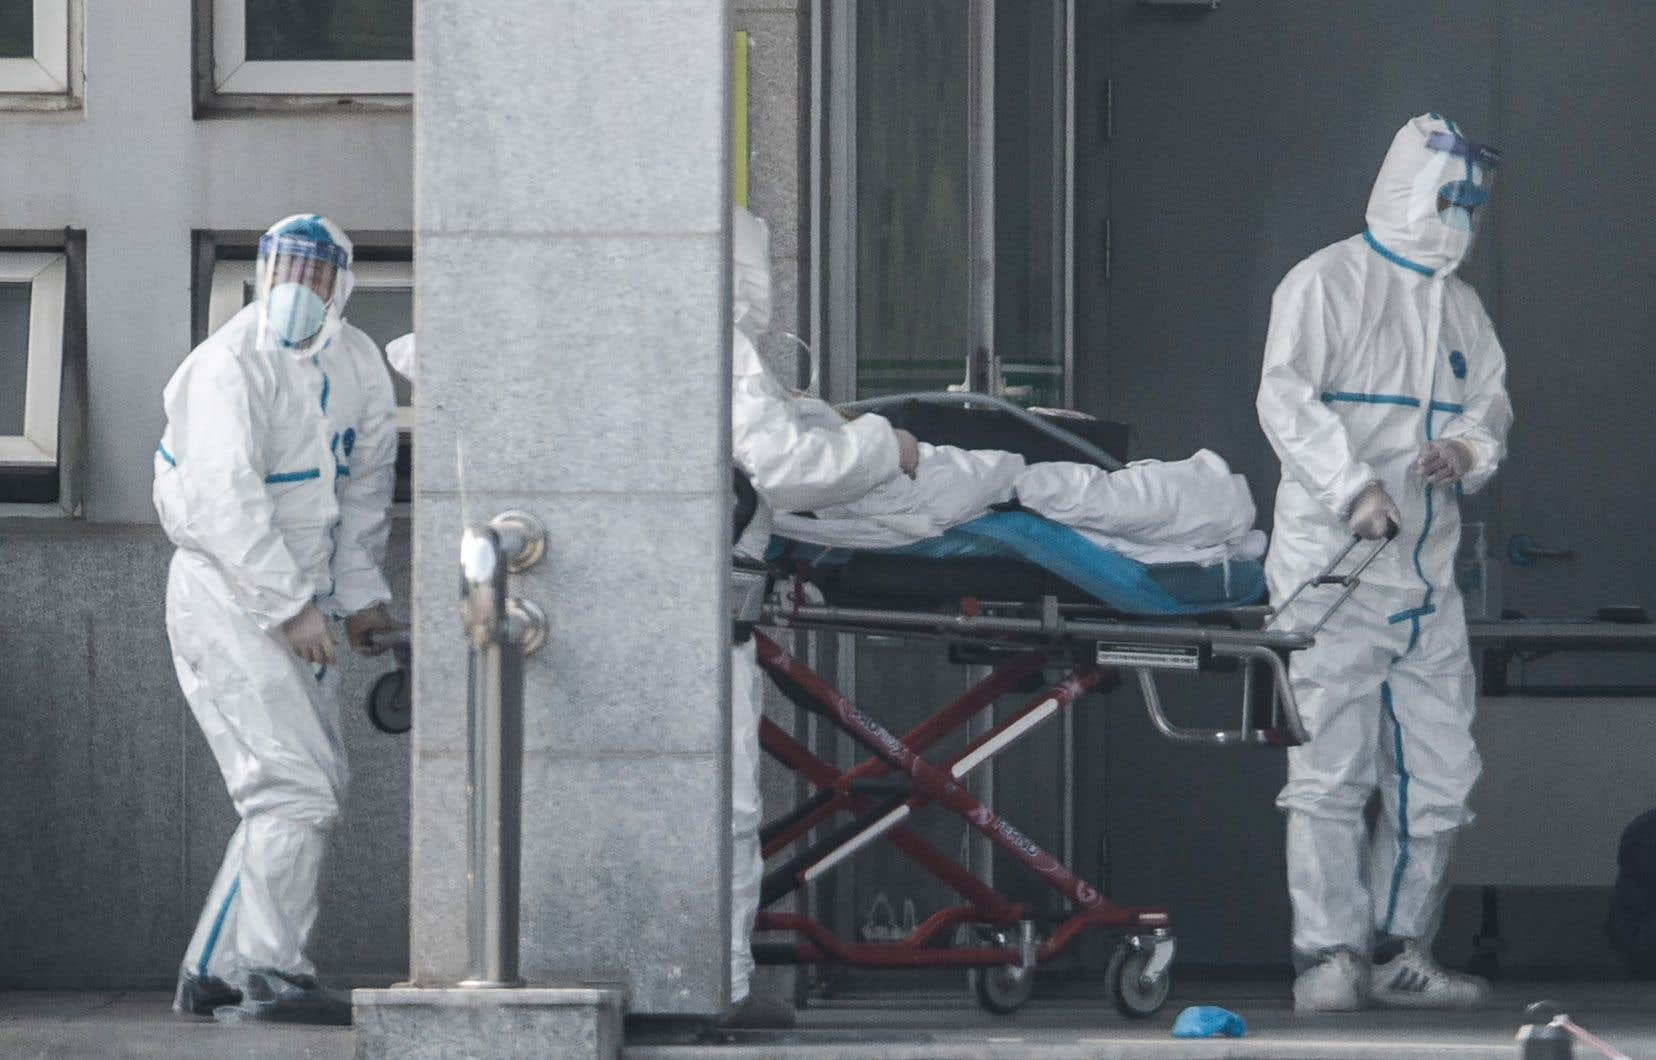 Des membres du personnel médical transportent un patient à l'hôpital de Jinyintan, où des patients infectés par un mystérieux virus semblable au SRAS sont traités, à Wuhan, dans la province centrale du Hubei en Chine, le 18 janvier 2020.